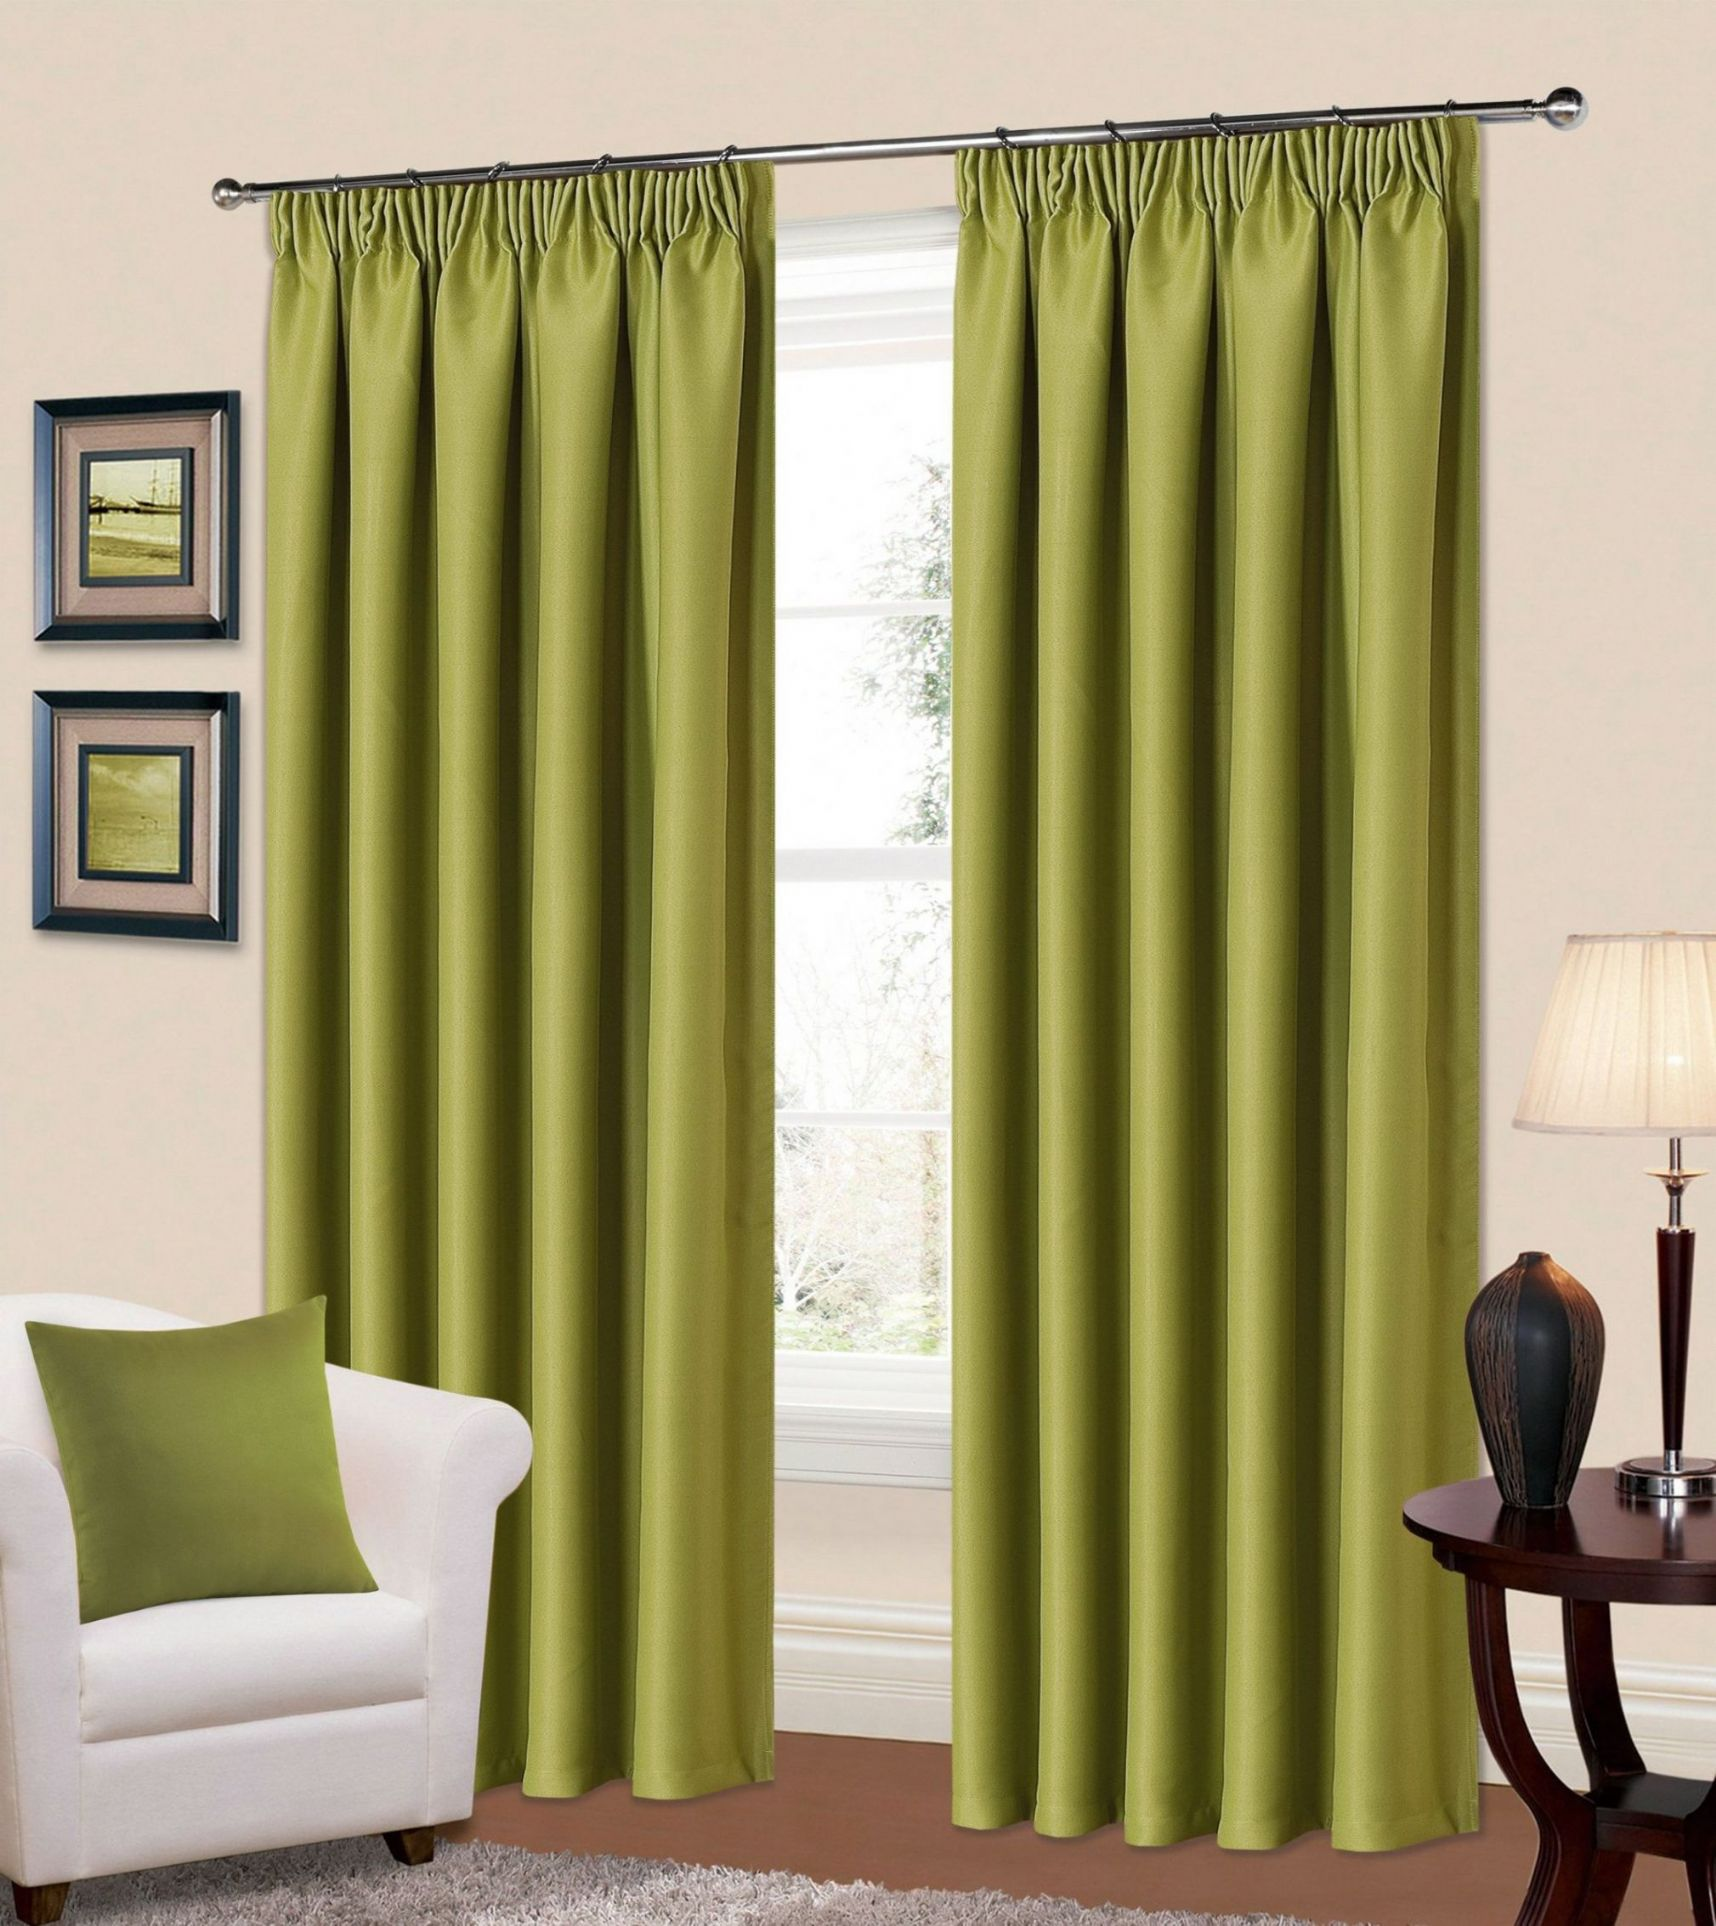 Bedroom Blackout Eyelet Curtains